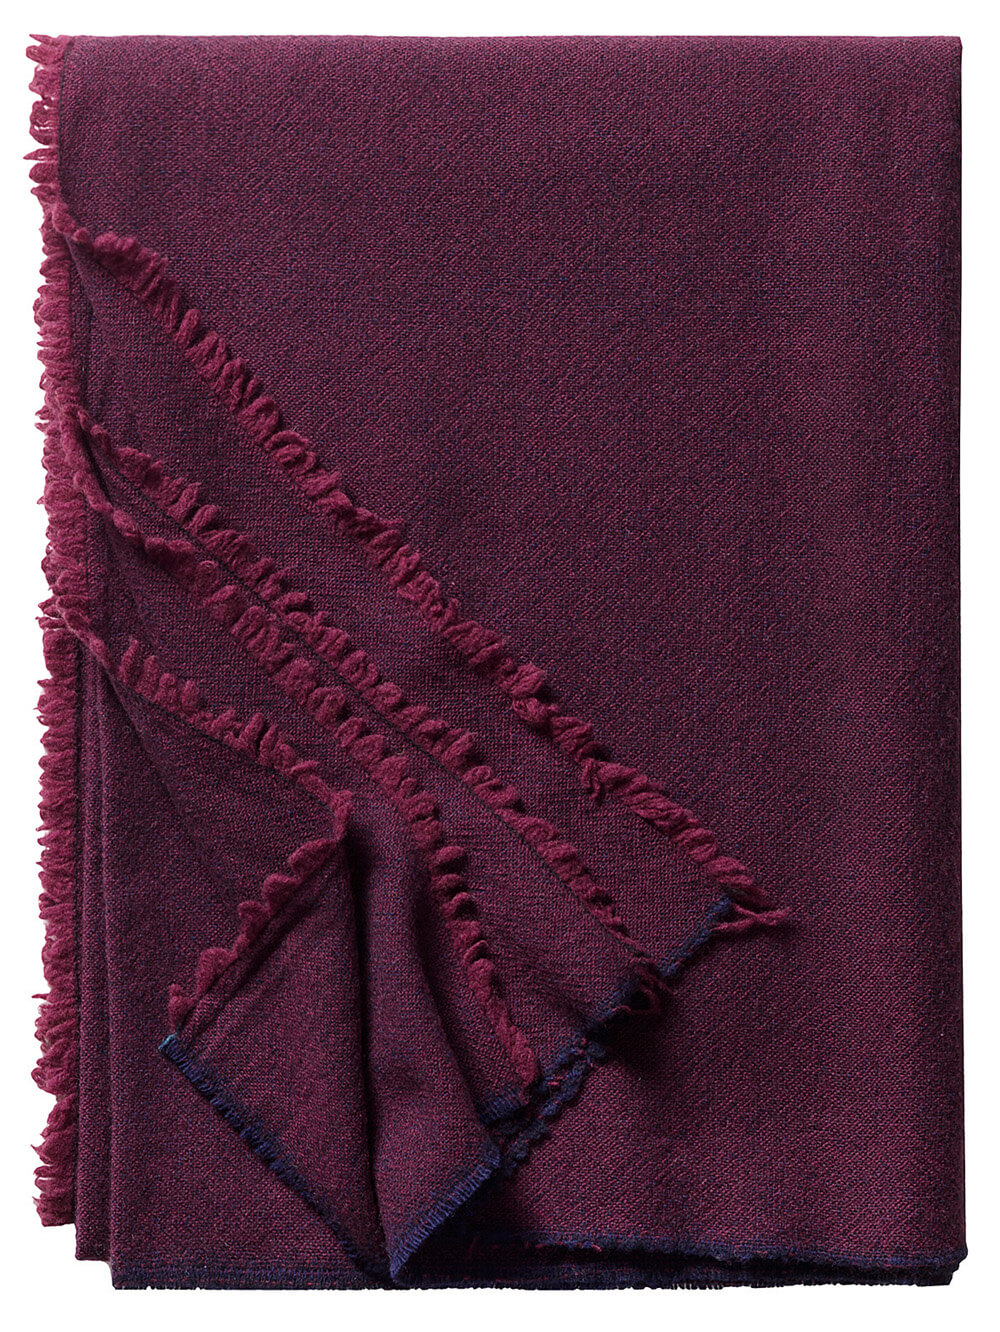 Bild von Vegas_darkred_decke_casual_wool_104, Variante Bordo